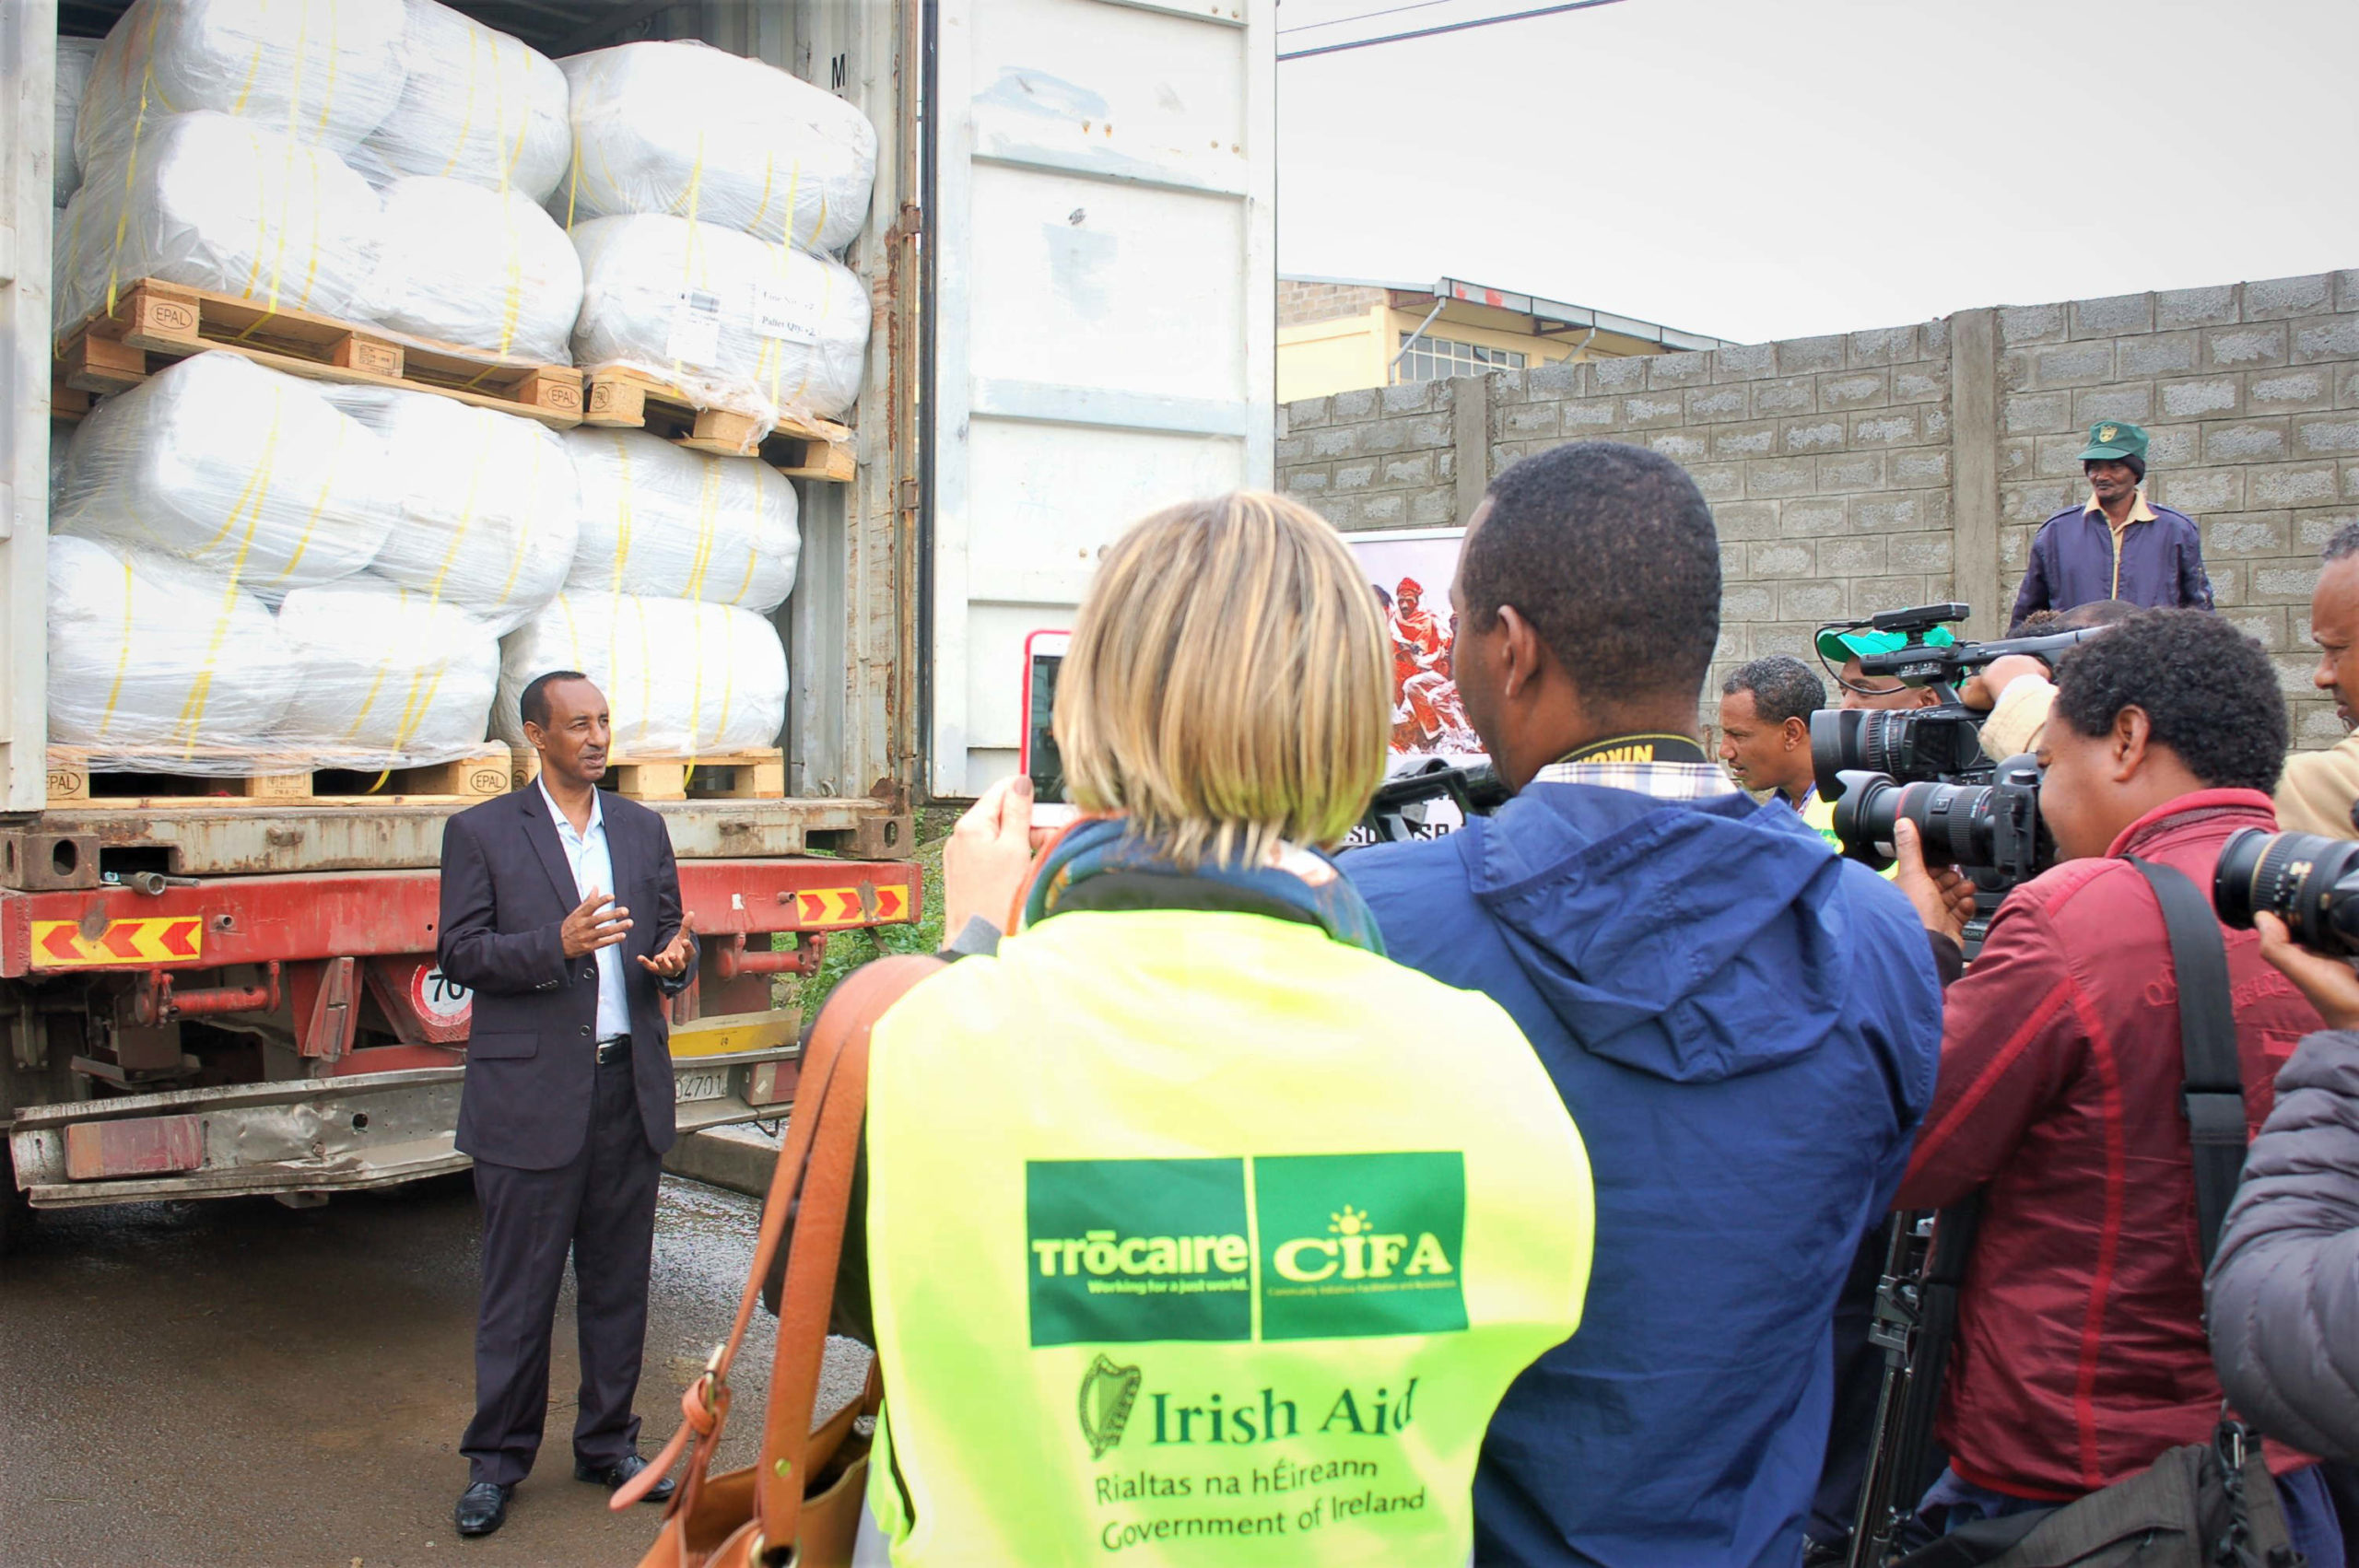 Irish Aid today delivered 118 tonnes of emergency aid to Trócaire's team in Ethiopia. The aid will benefit 20,000 people.